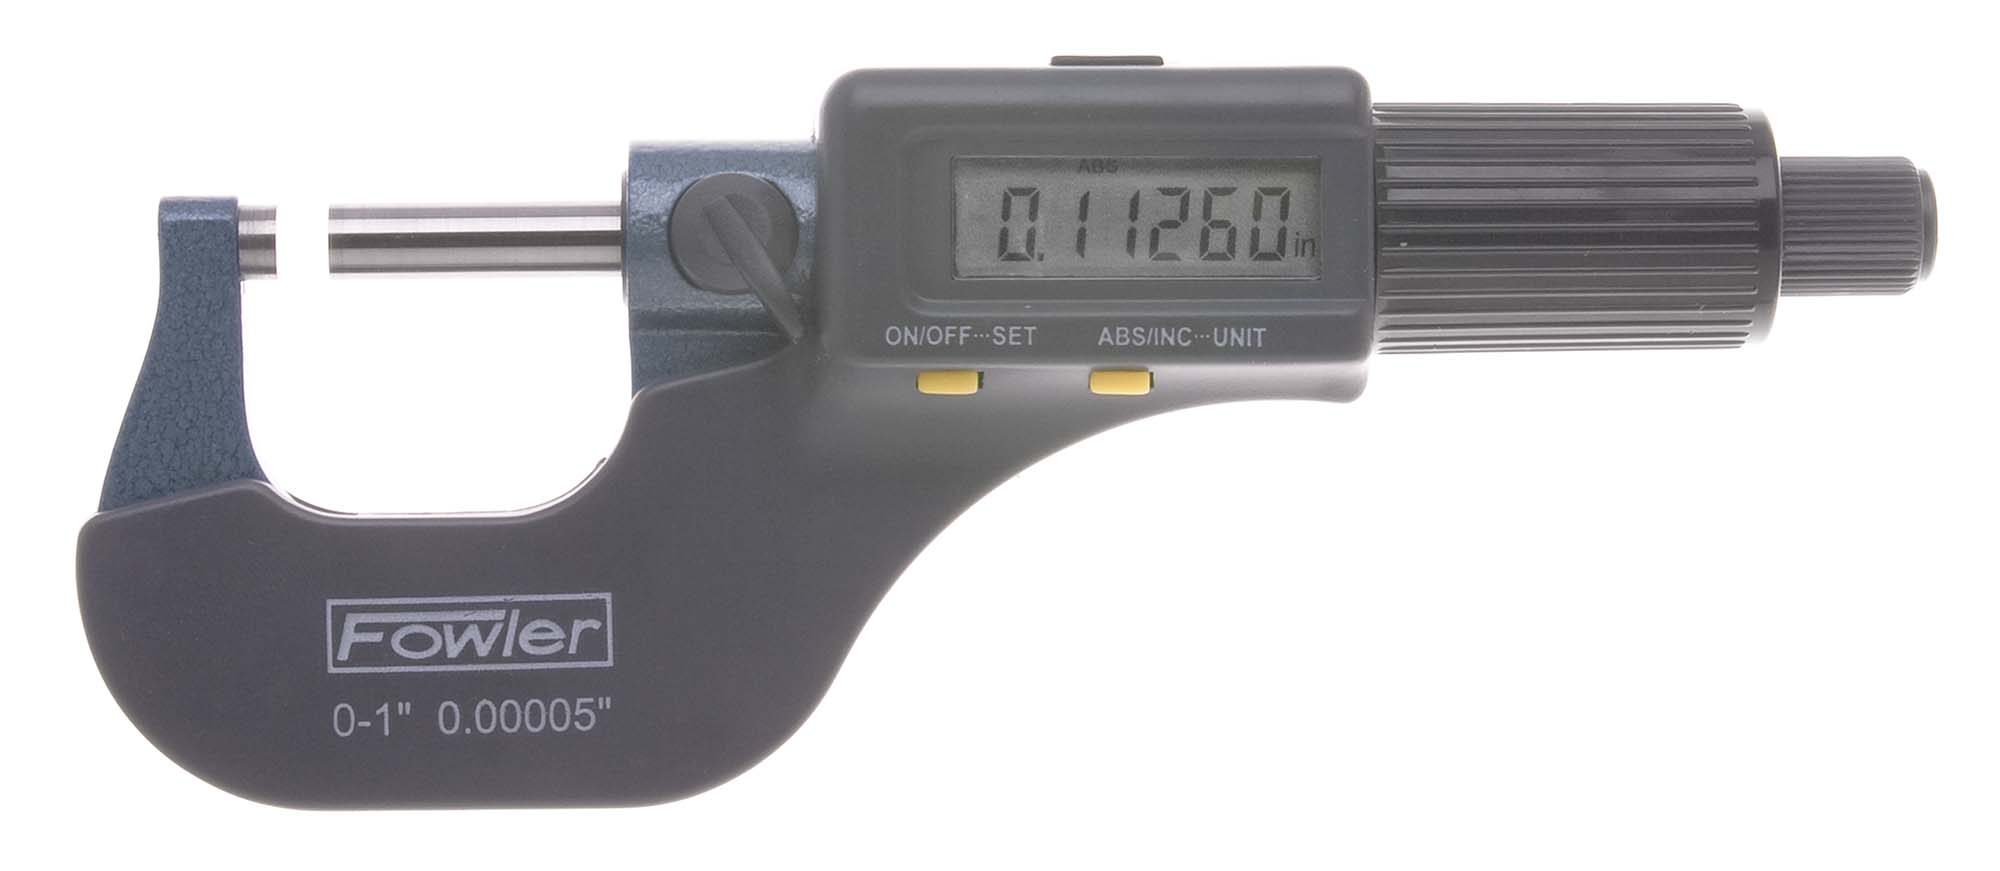 0-3in. Set of Fowler Electronic Micrometers - IP54